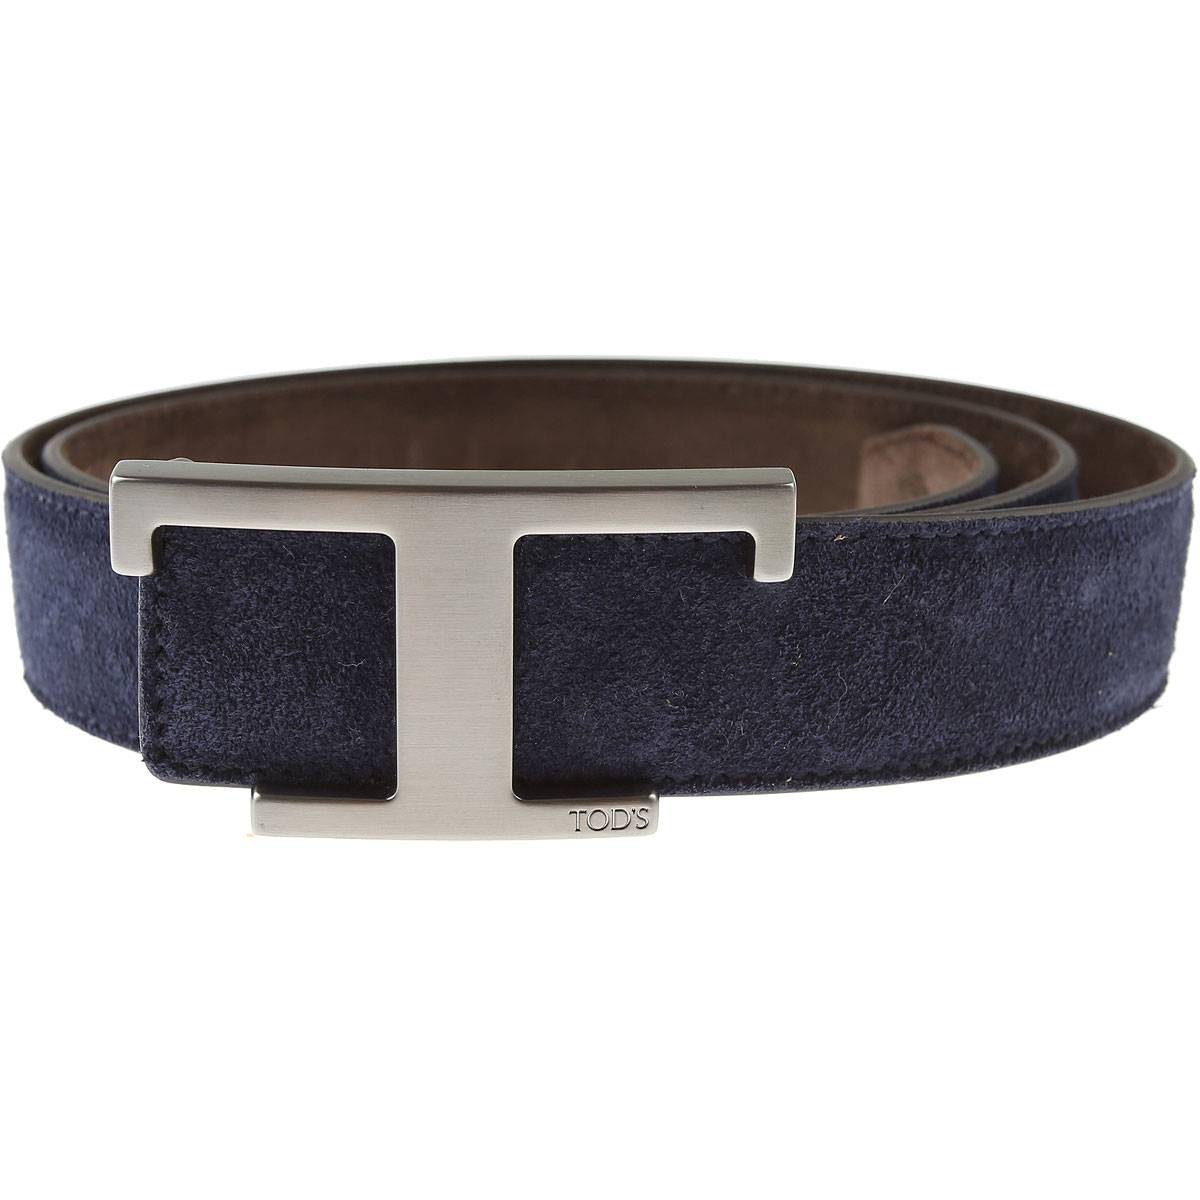 Tods Belts On Sale, Ink Blue, Leather, 2019, 40 42 44